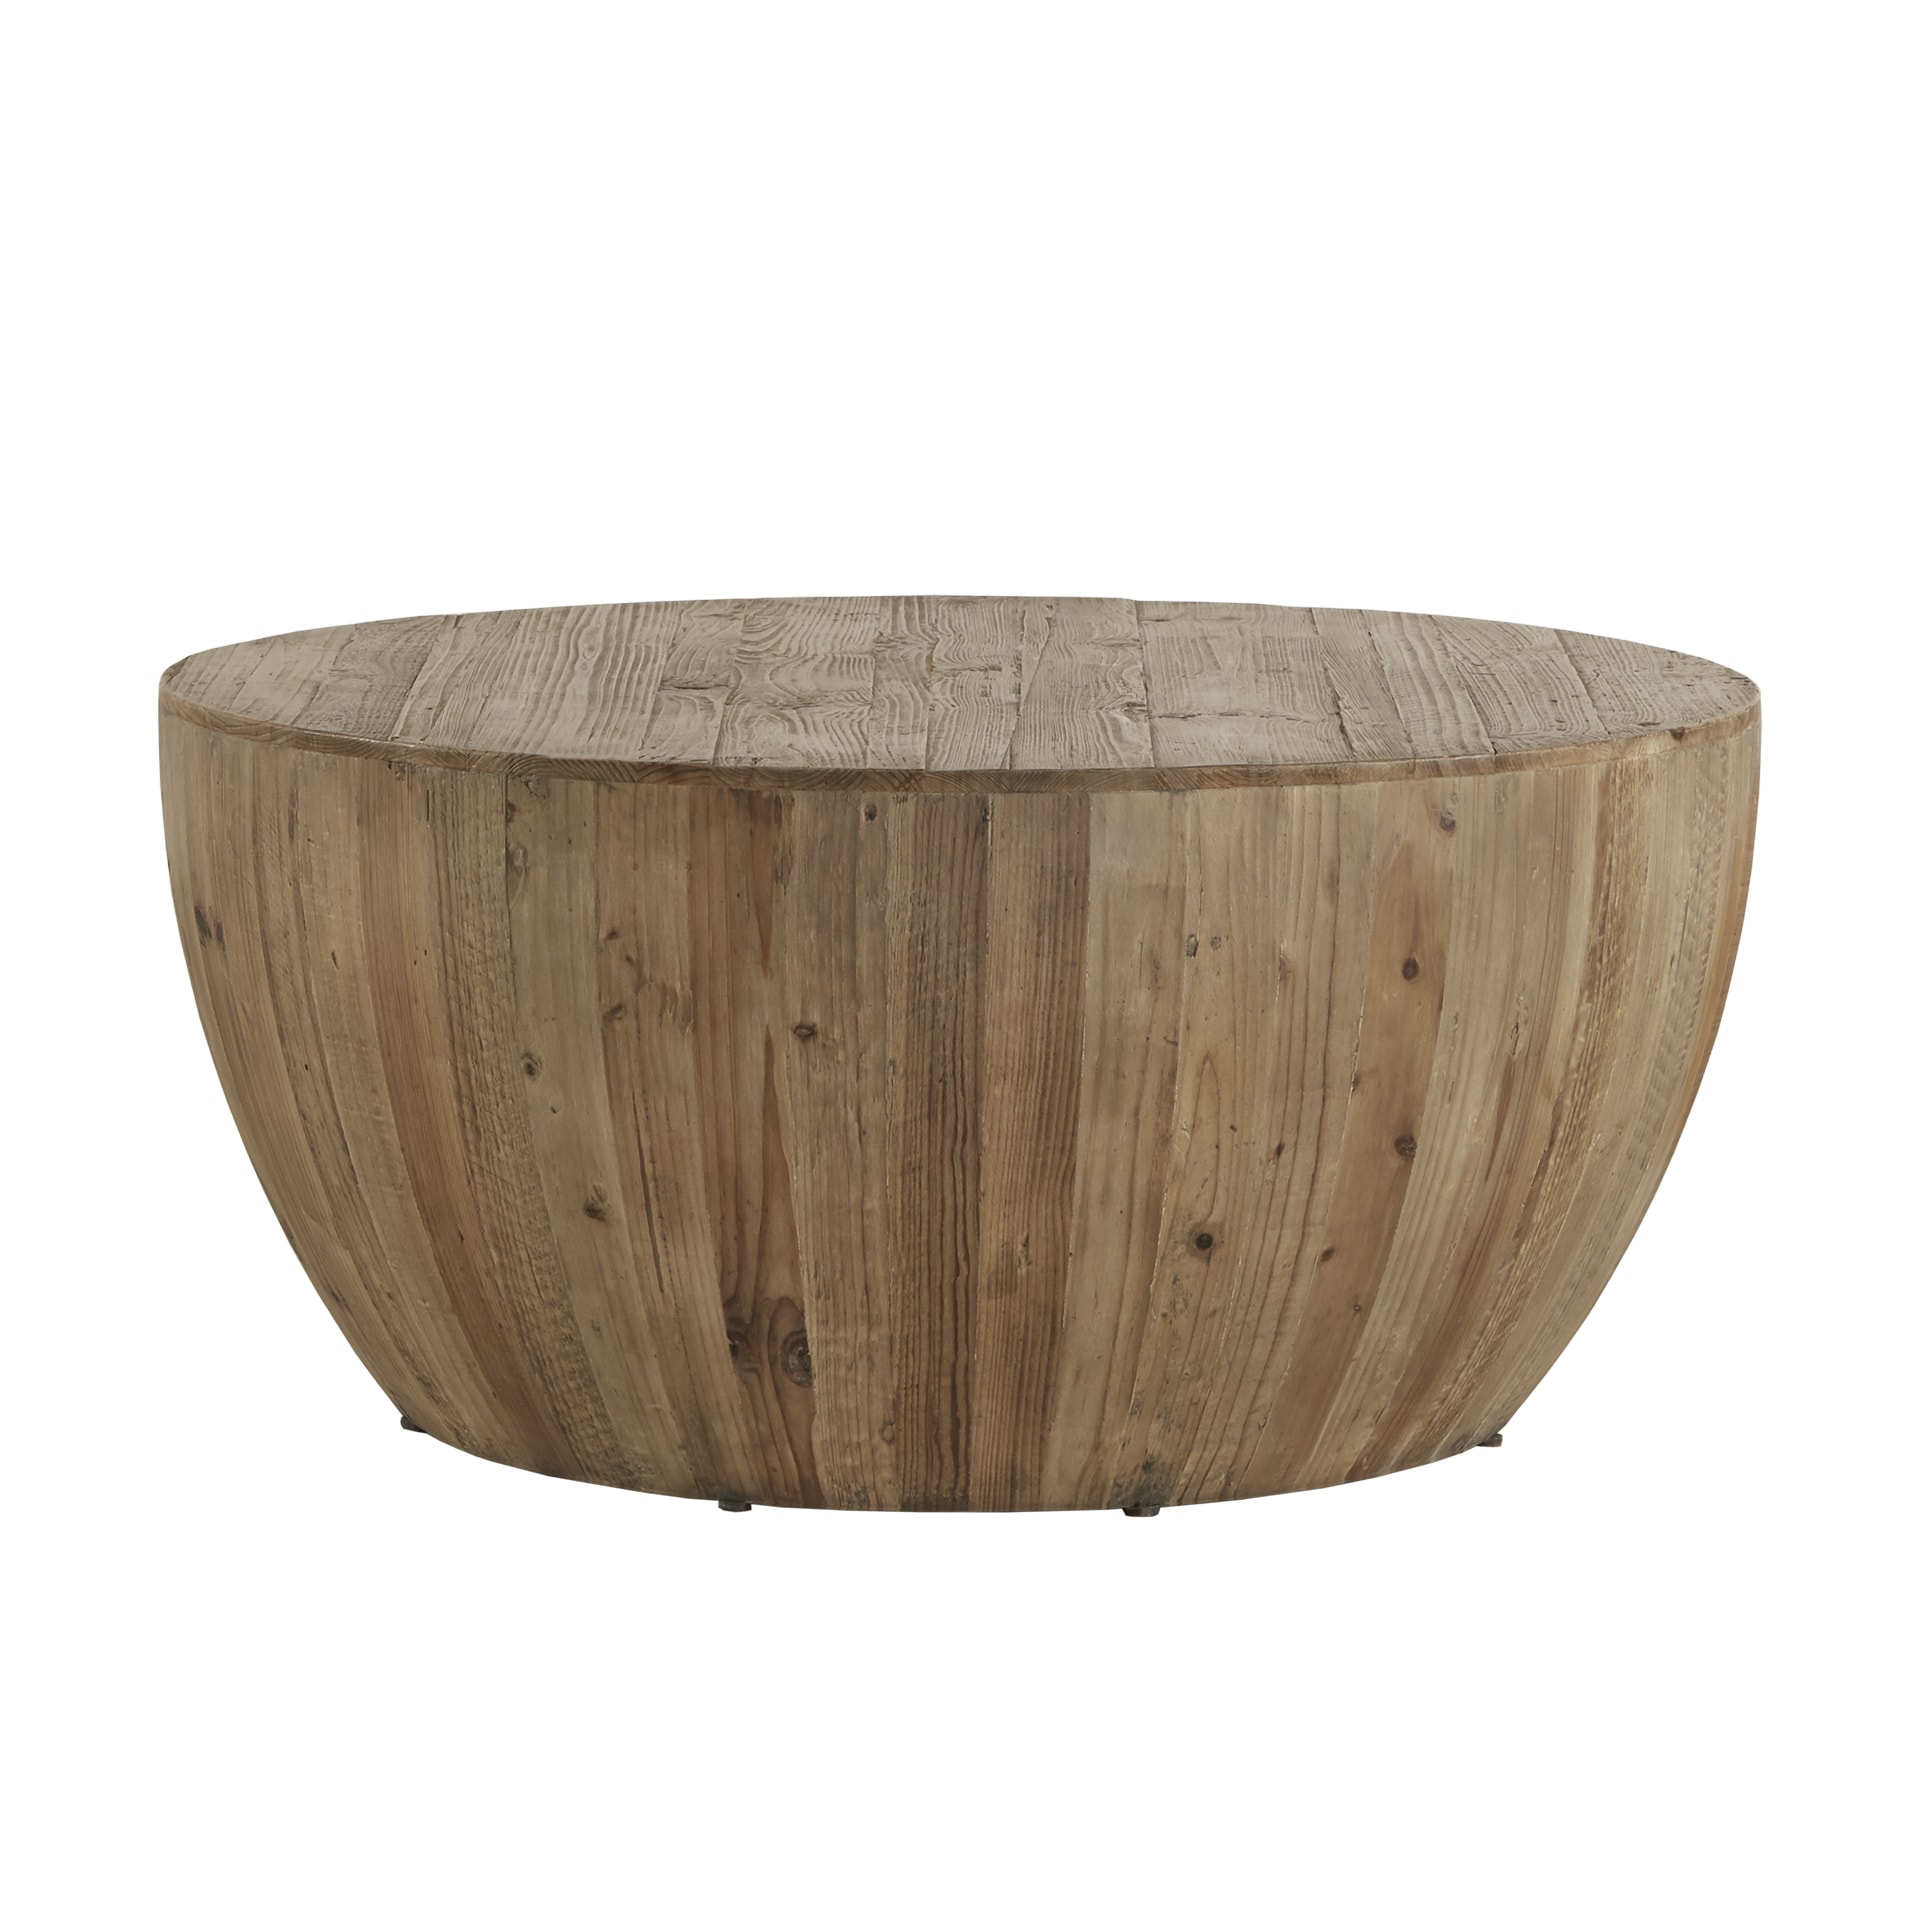 Hatteras Drum Reclaimed Woodblock Barrel Coffee Table By INSPIRE Q Artisan    Free Shipping Today   Overstock   18916768